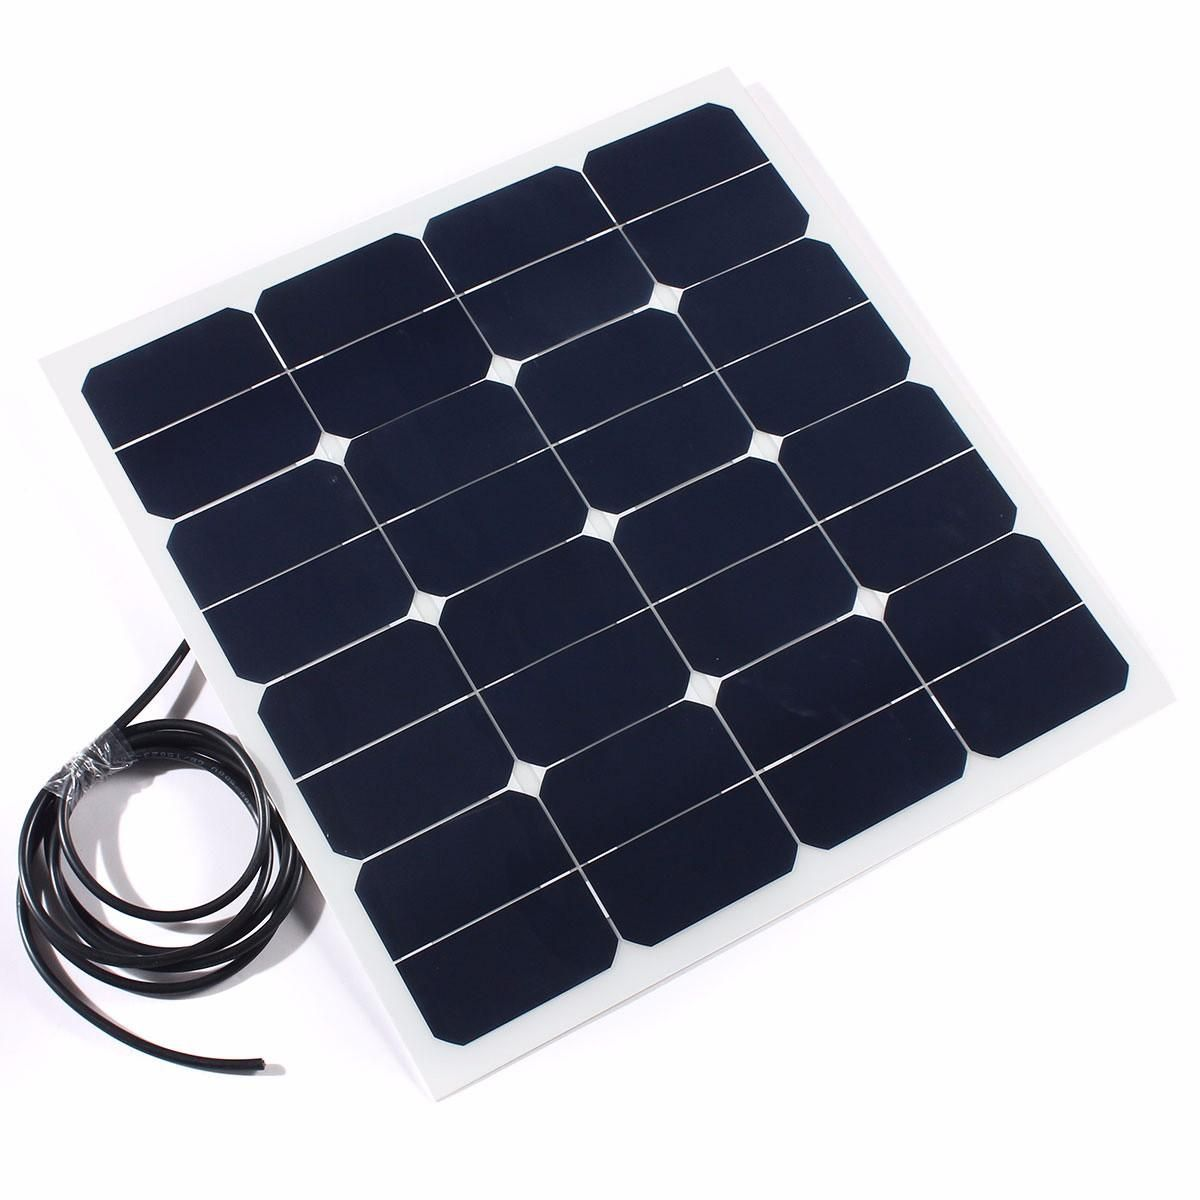 50w 12v Sunpower Chip Semi Flexible Solar Panel With 3m Cable